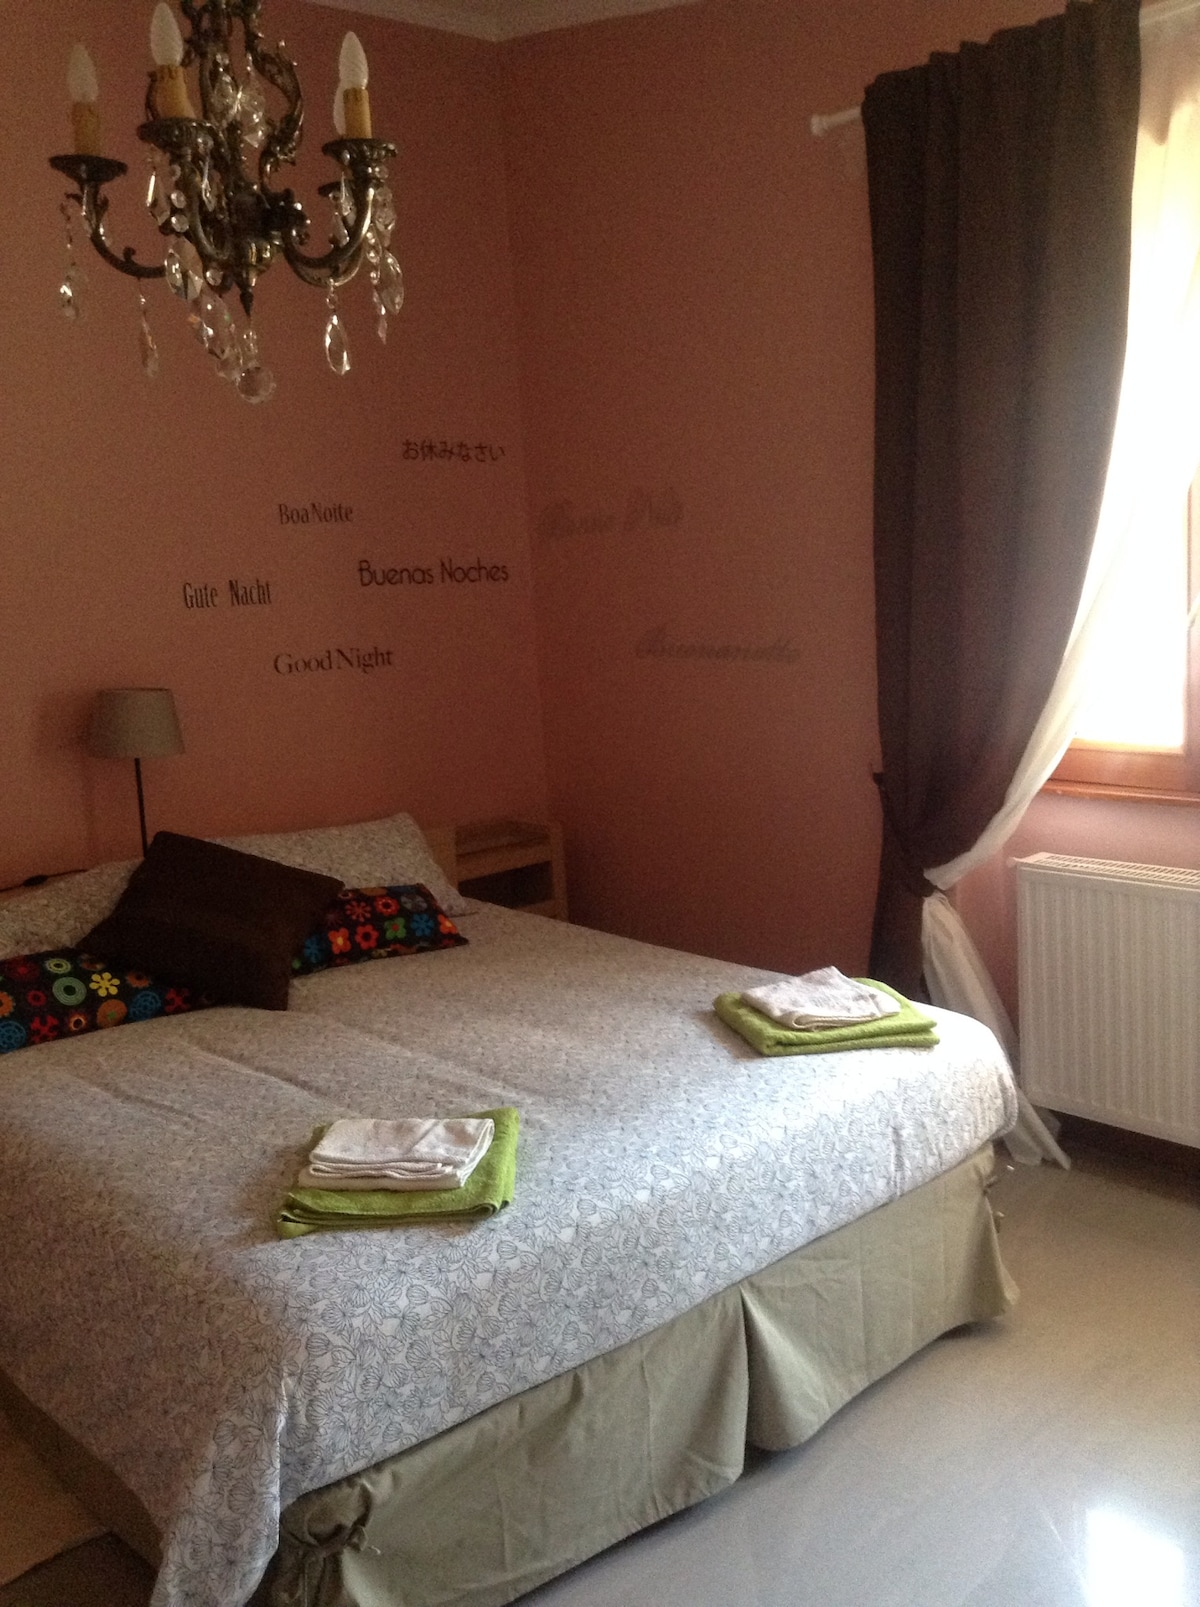 The relax bedroom